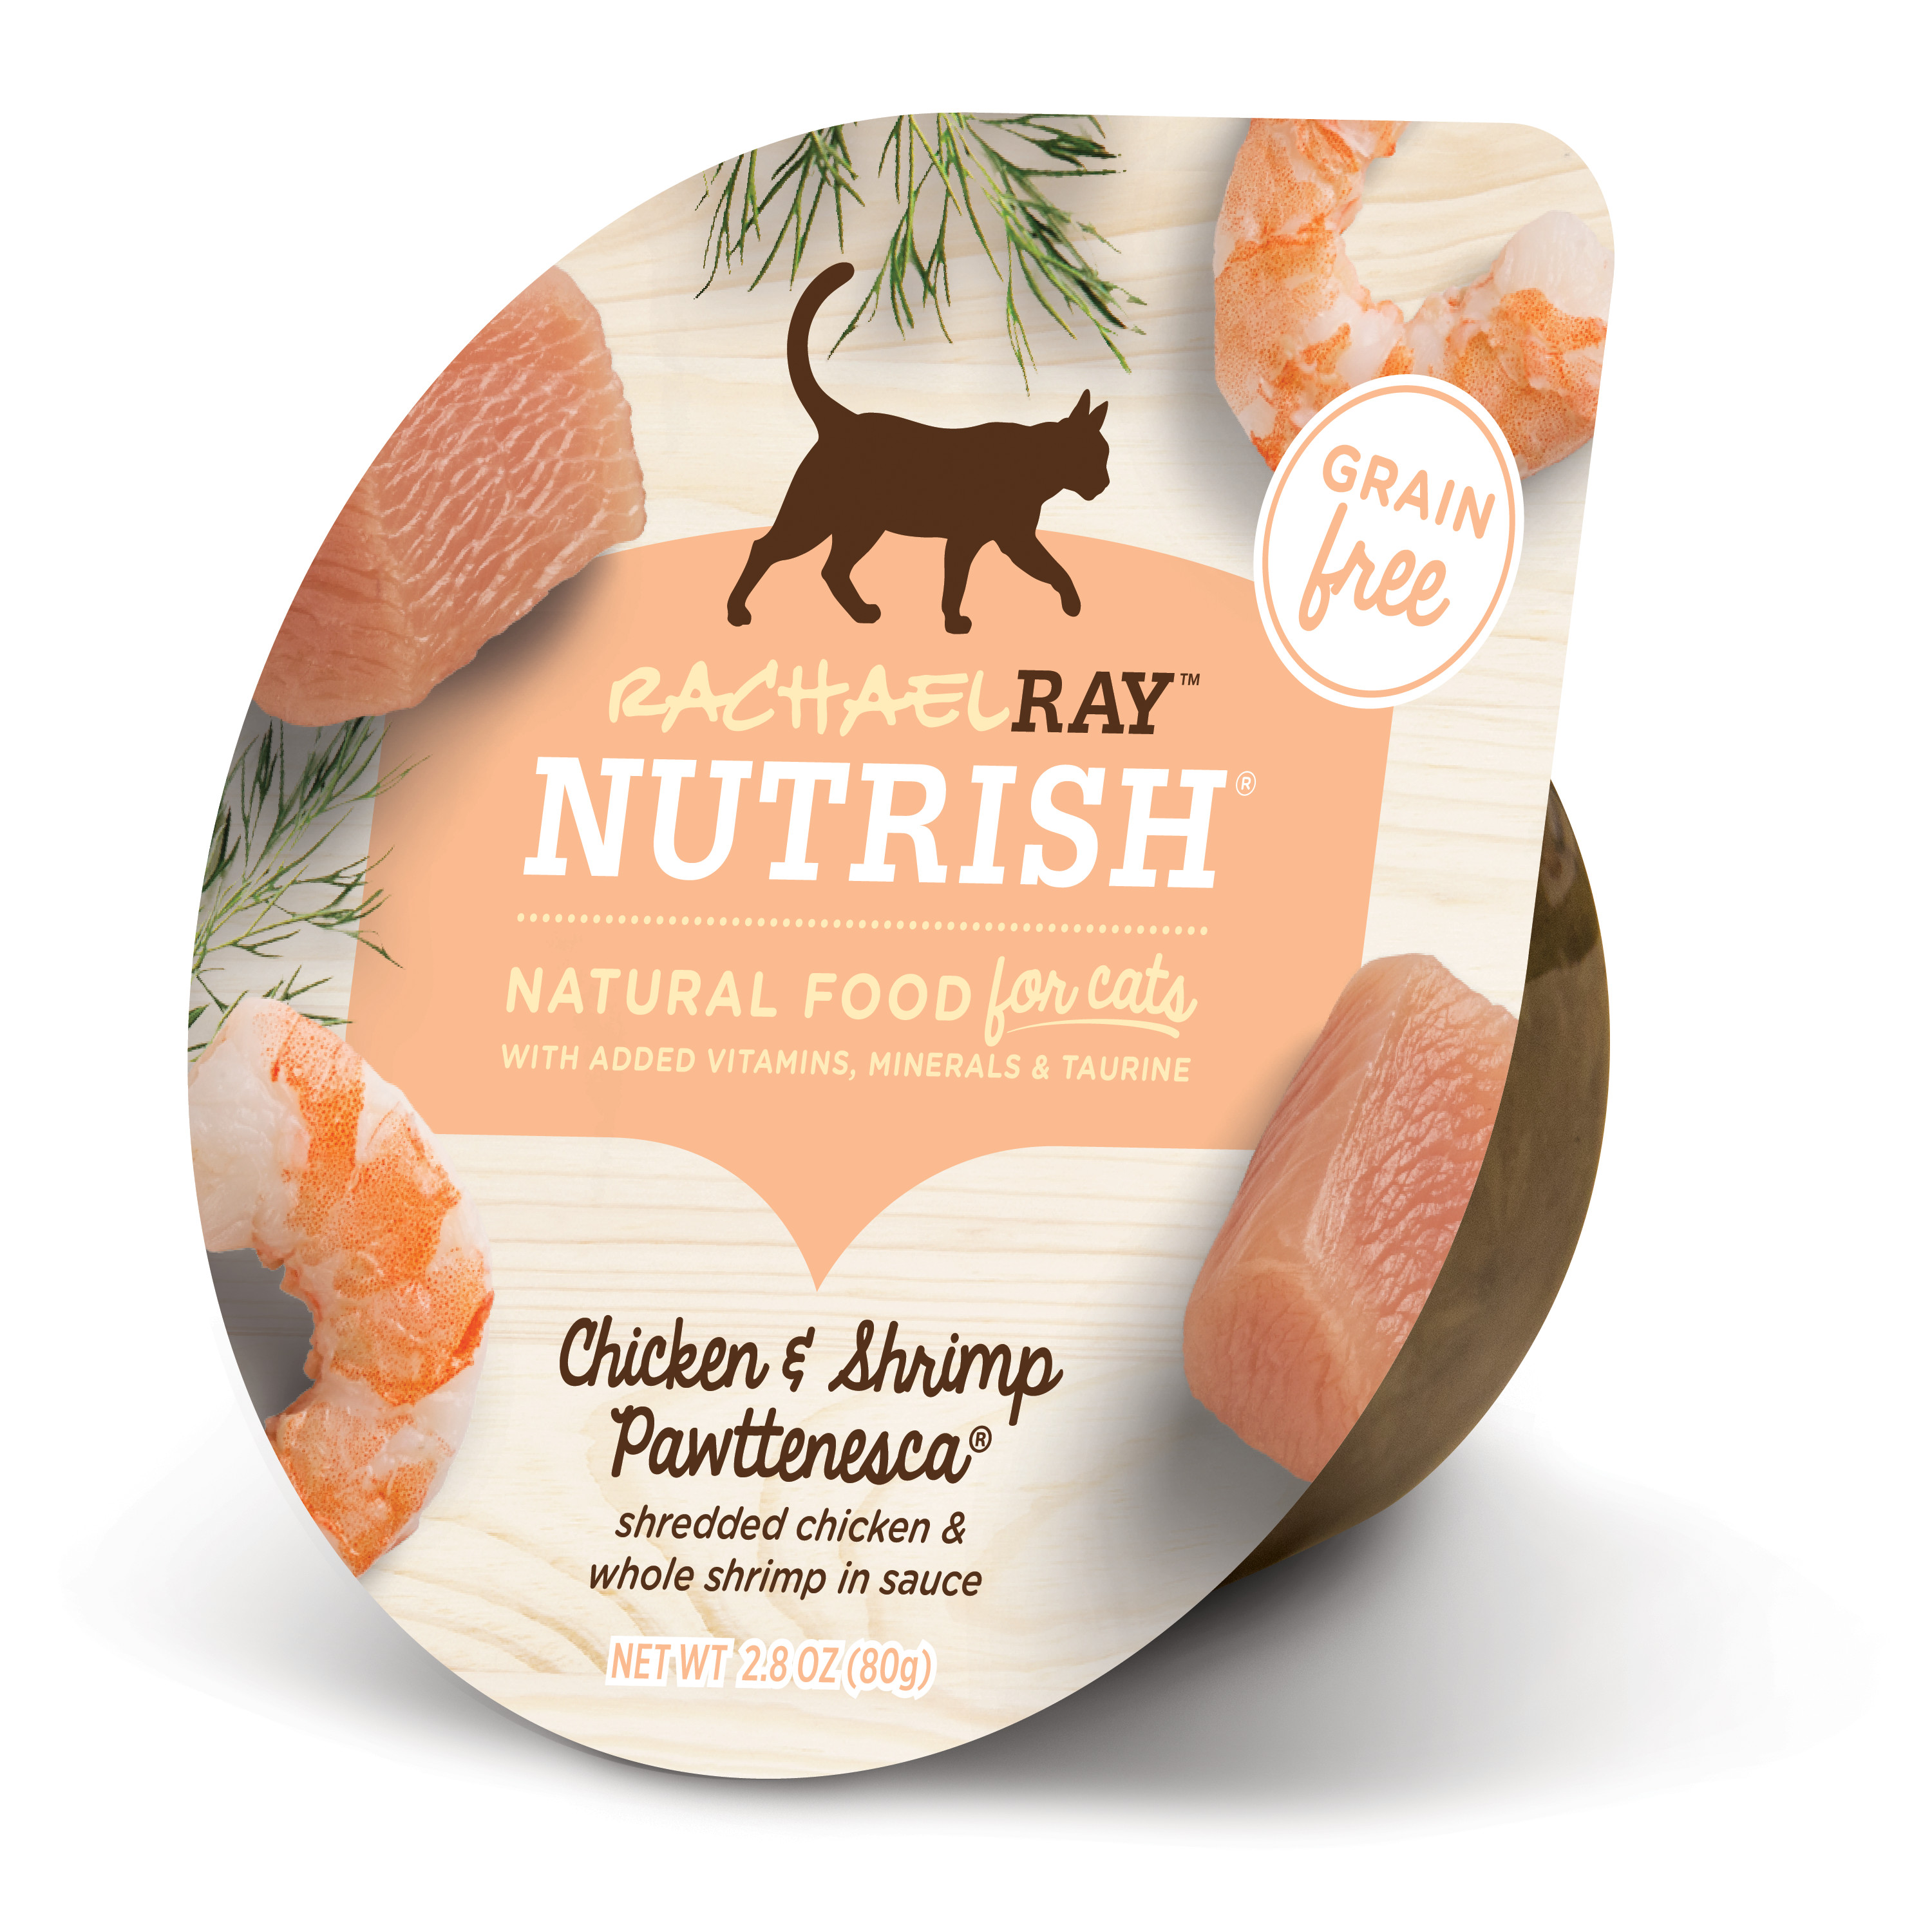 Rachael Ray Nutrish Natural Wet Cat Food, Grain Free, Chicken & Shrimp Pawttenesca, 2.8 oz tub